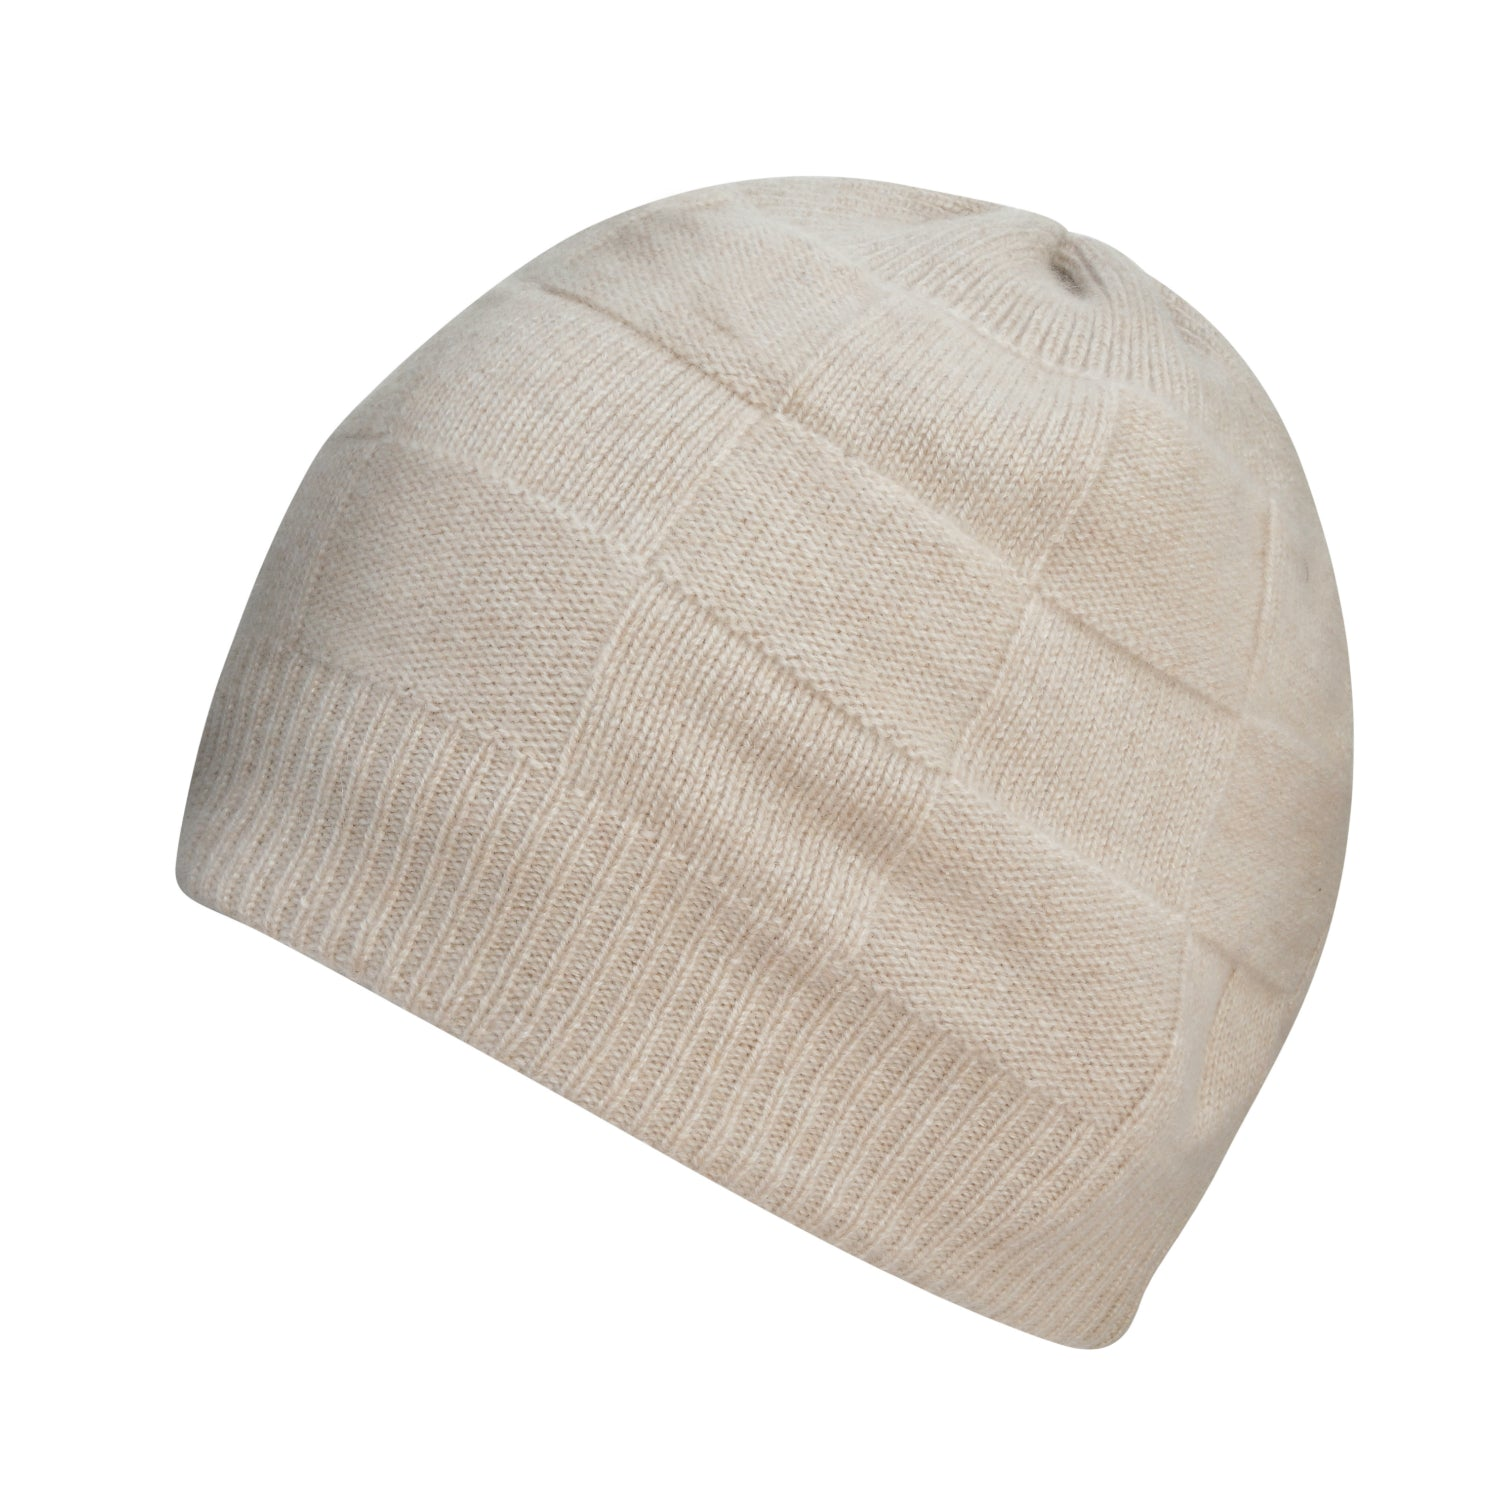 Light Beige Cashmere Beanie | buy now at The Cashmere Choice London